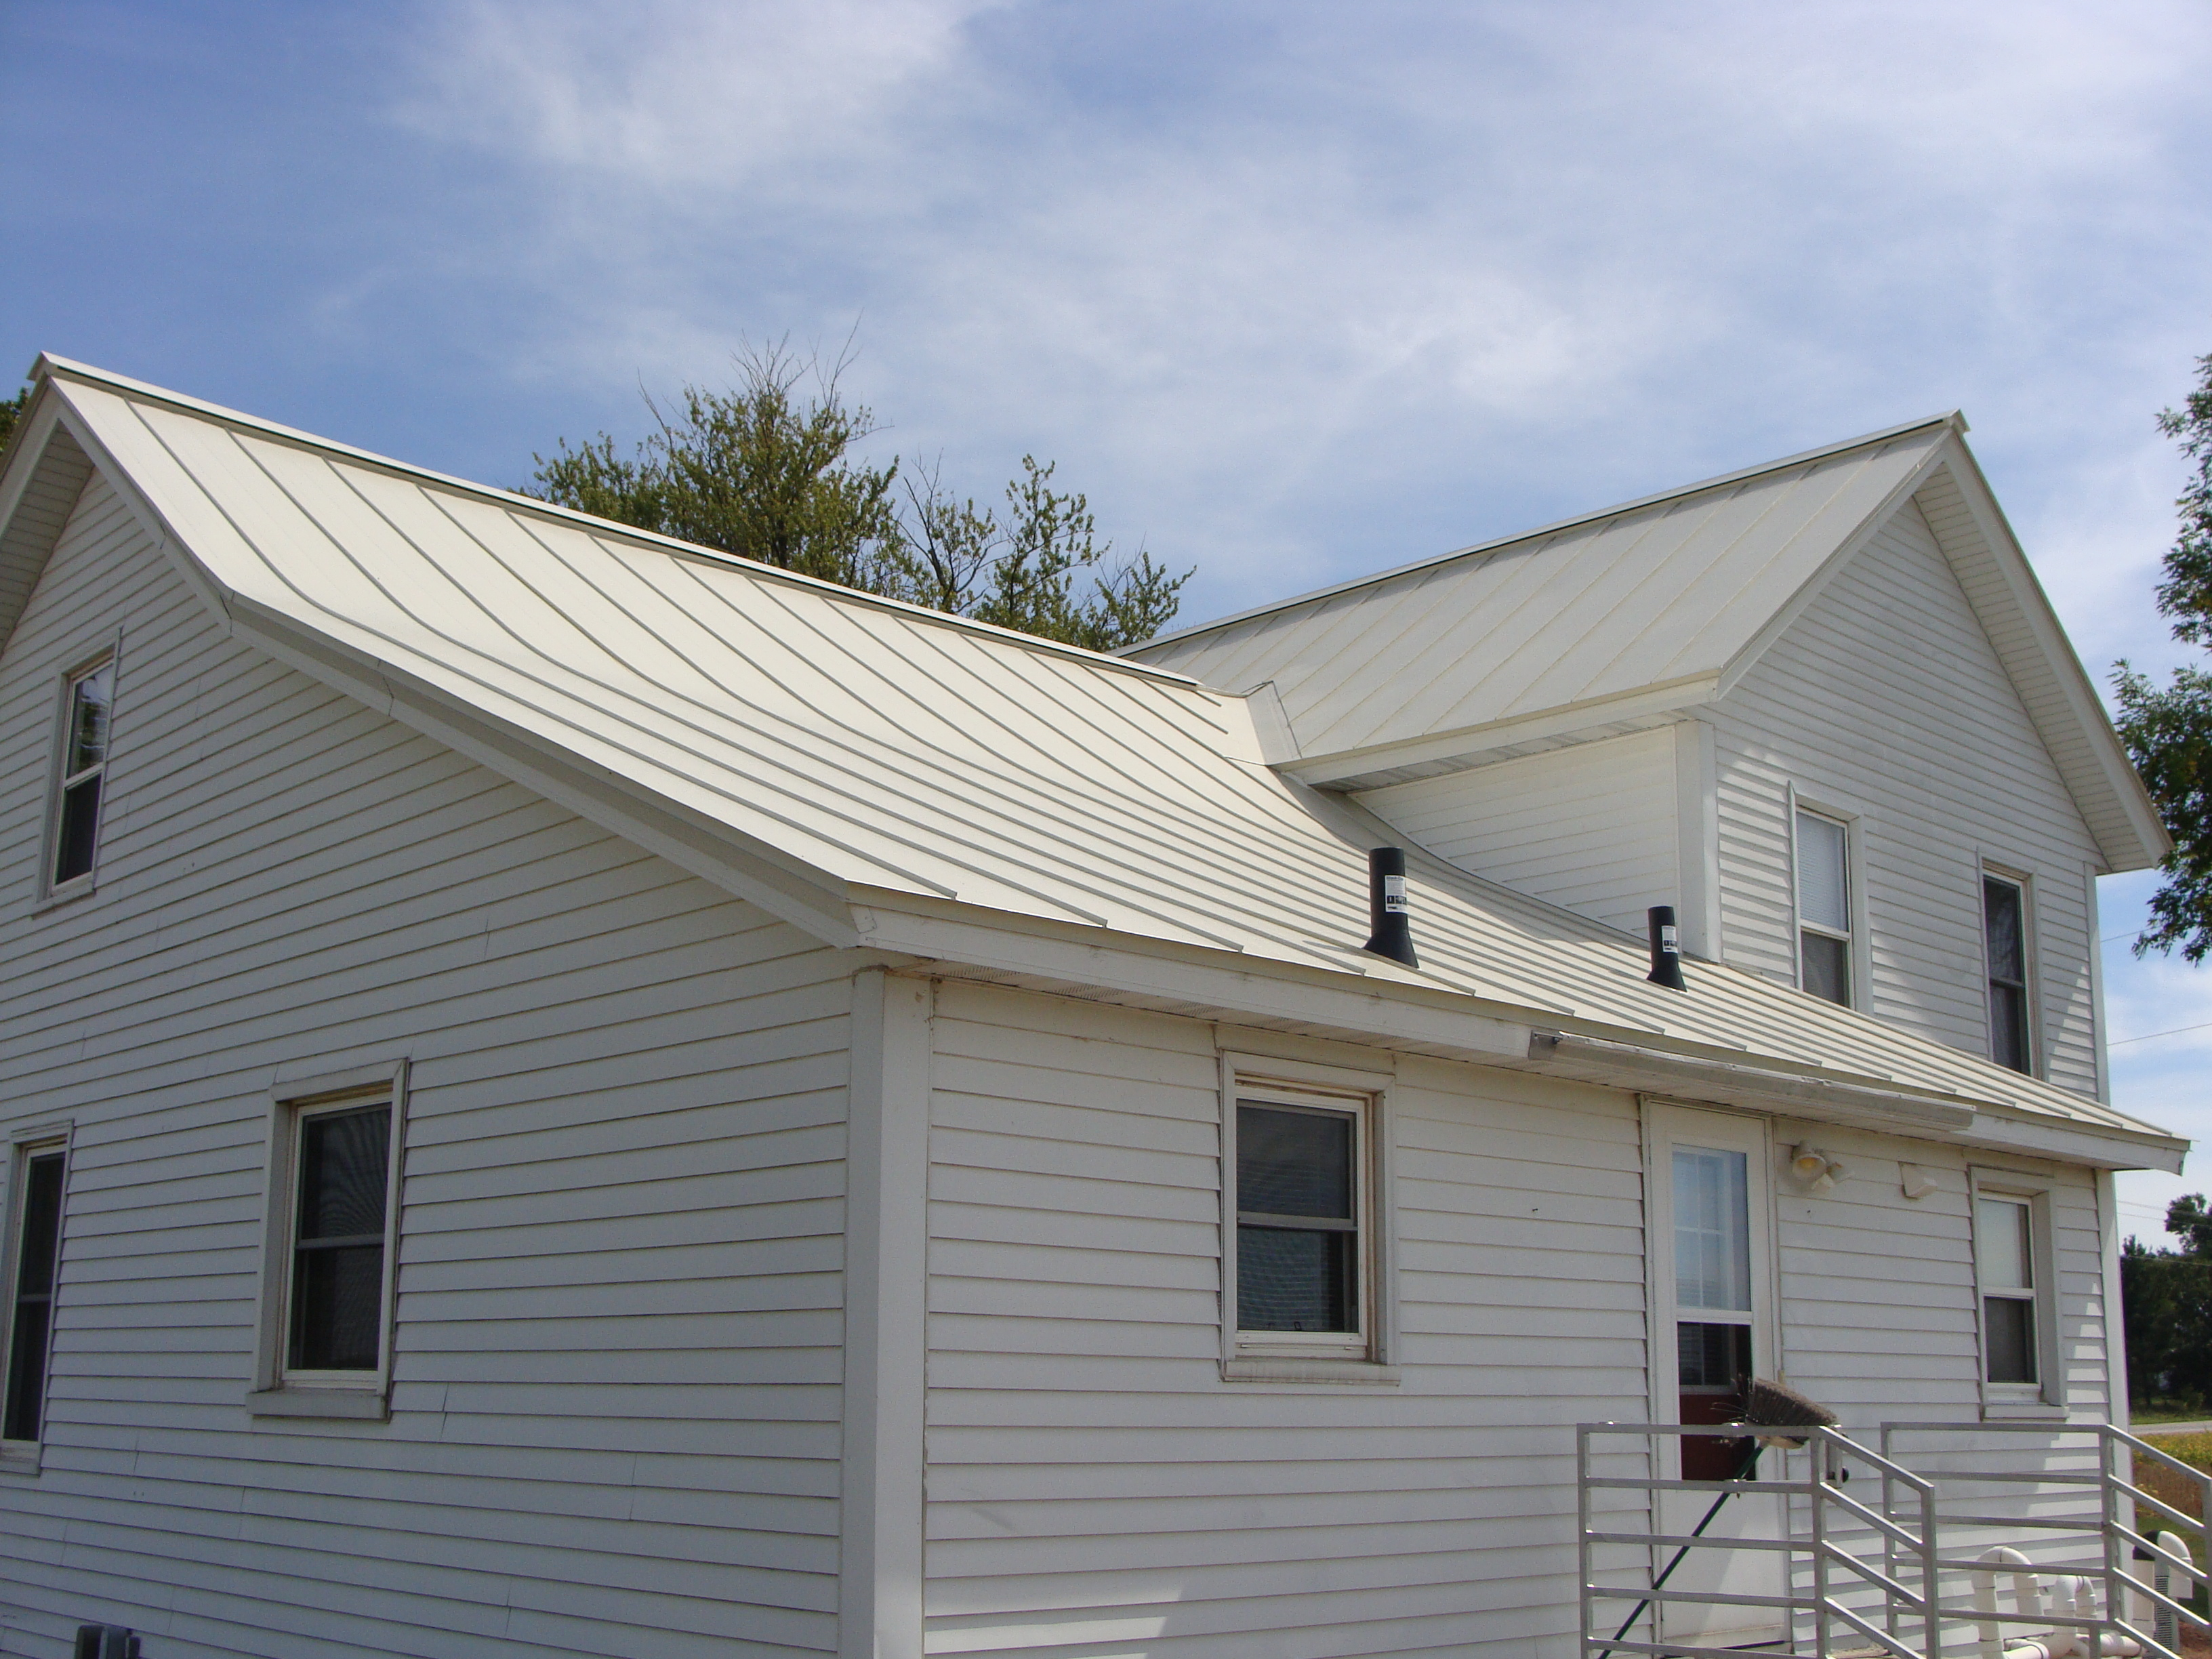 sheet white standing seam metal roofing wisconsin iowa minnesota illinois north dakota house residential